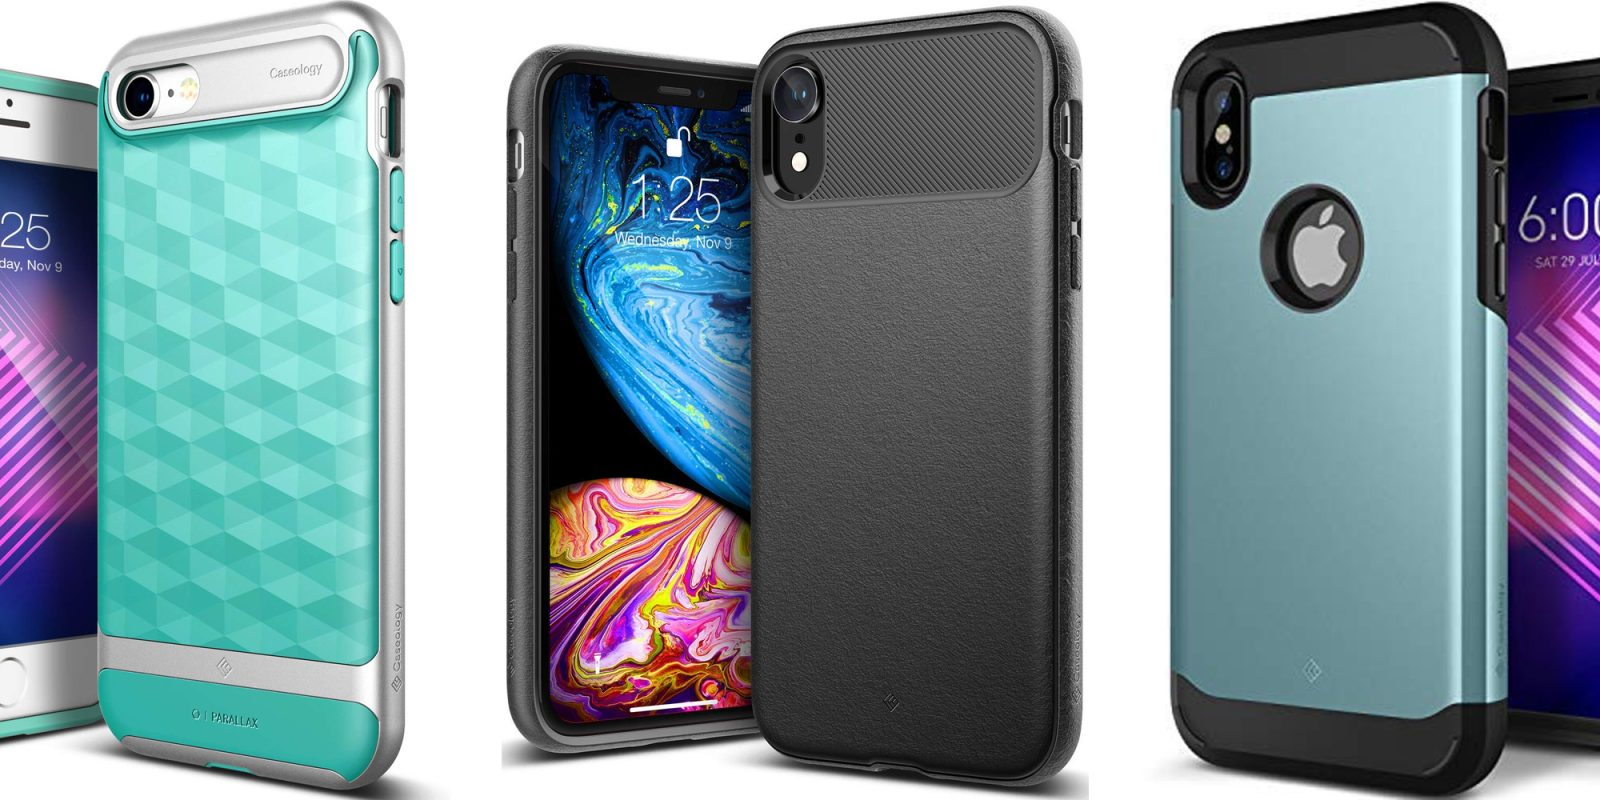 new product 73893 c6b36 Wrap your iPhone XS/R/8/7/Plus in a stylish new case starting at $4 ...